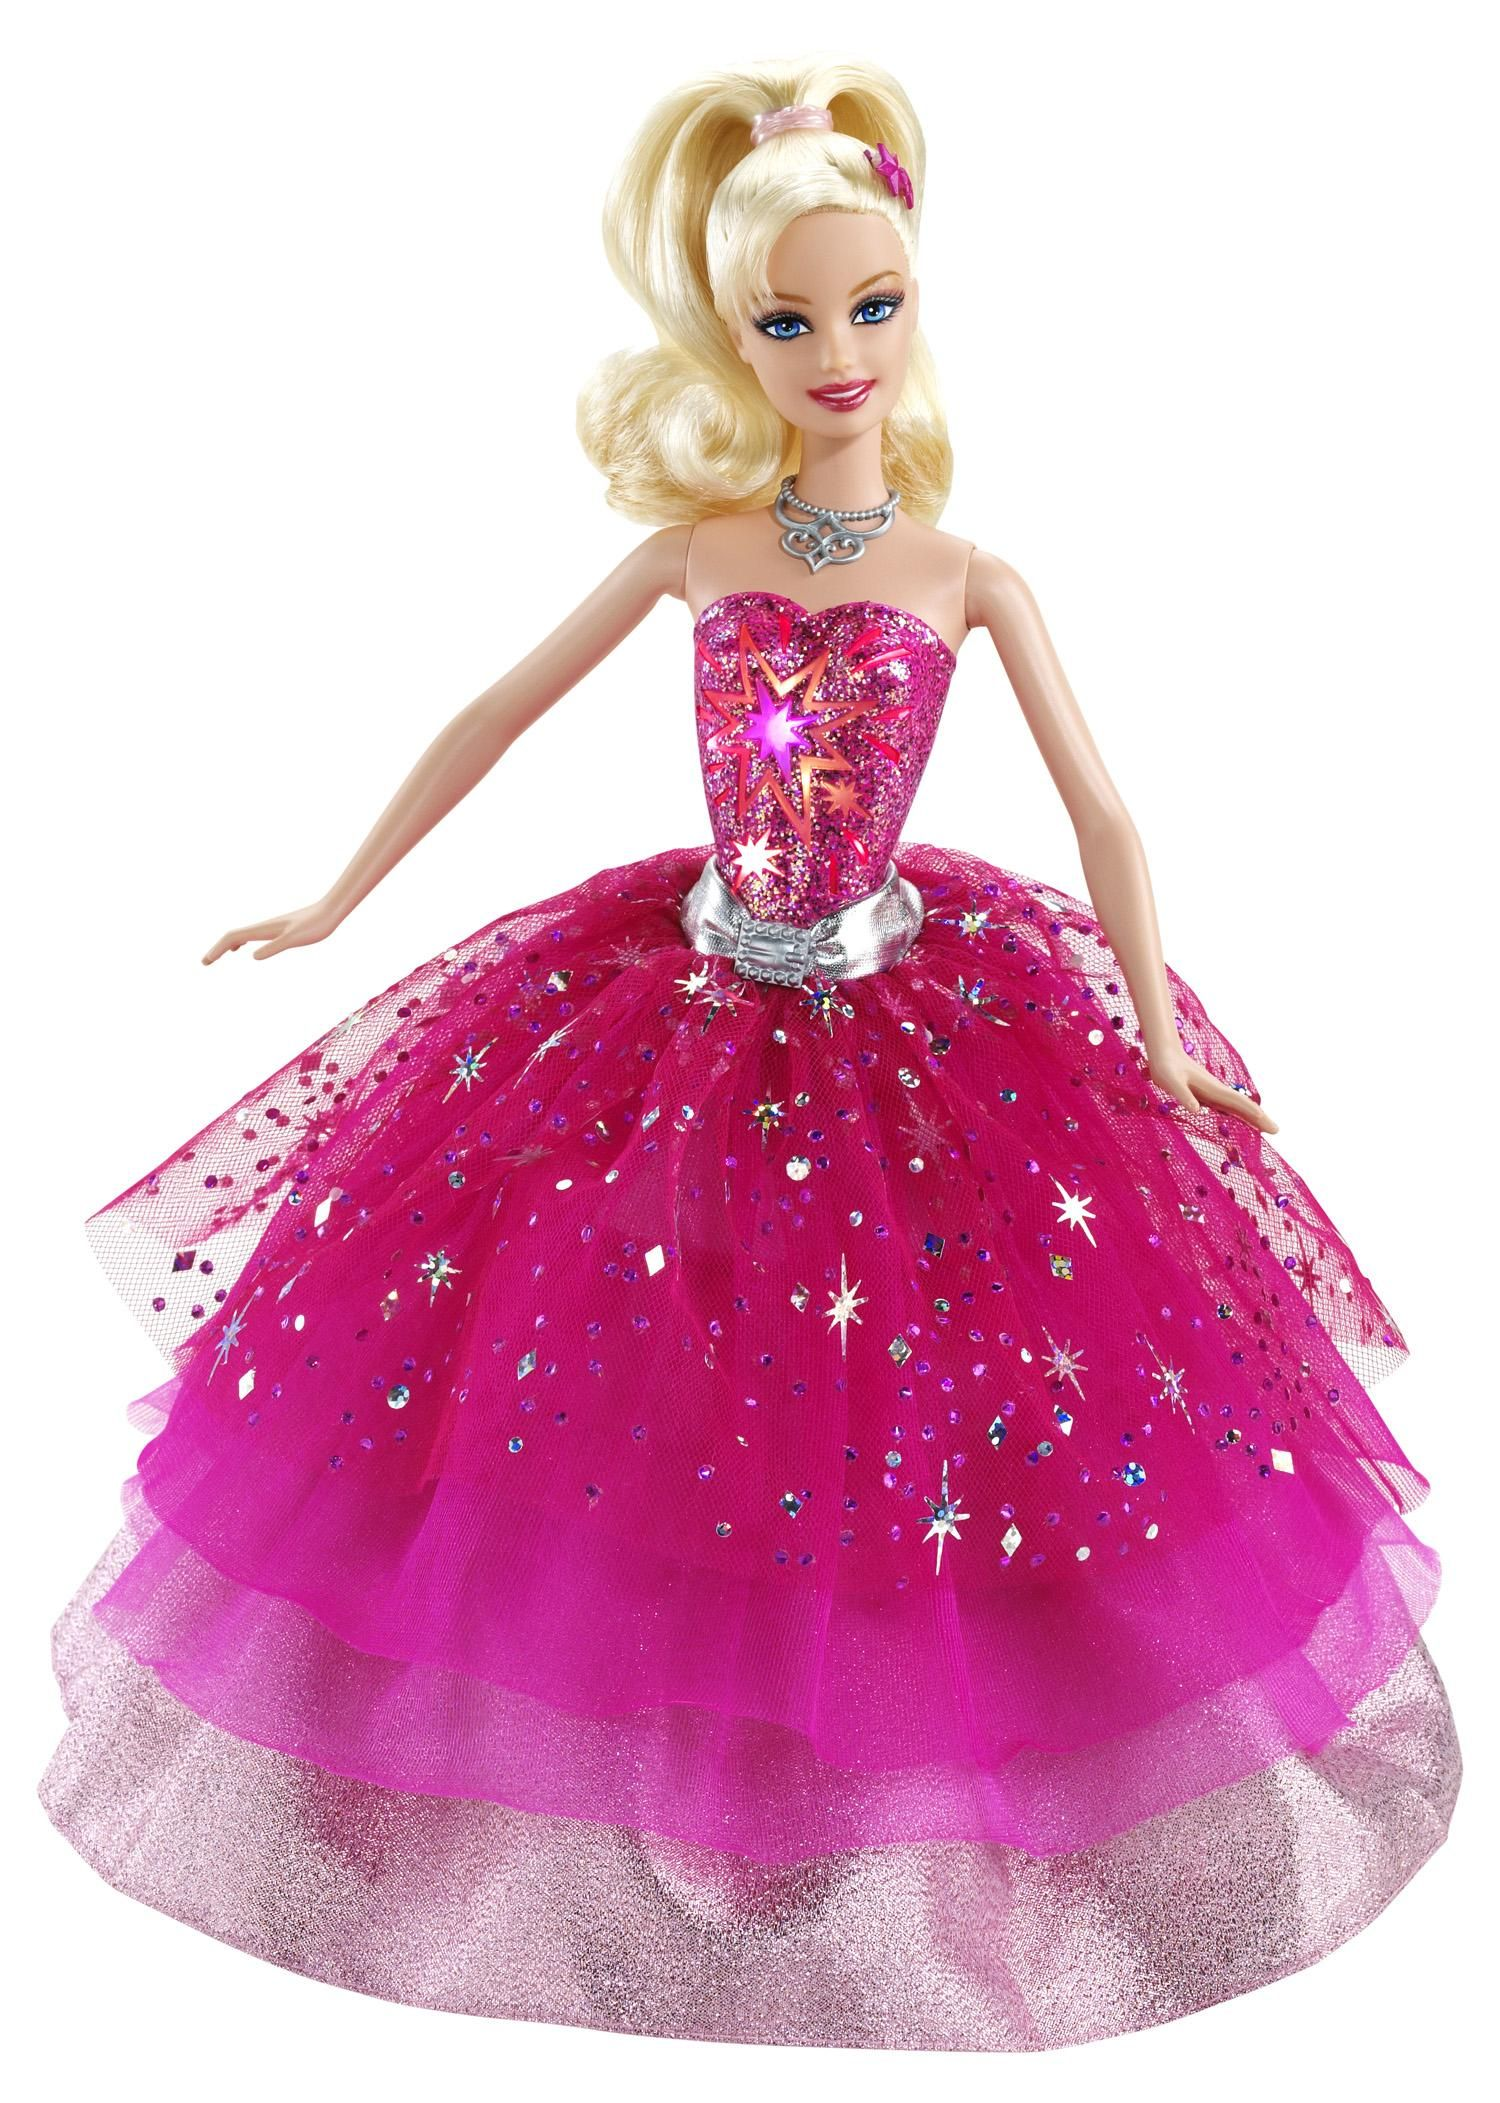 Pin By Monika Gautam On Barbie Dolls Dolls Pinterest Barbie